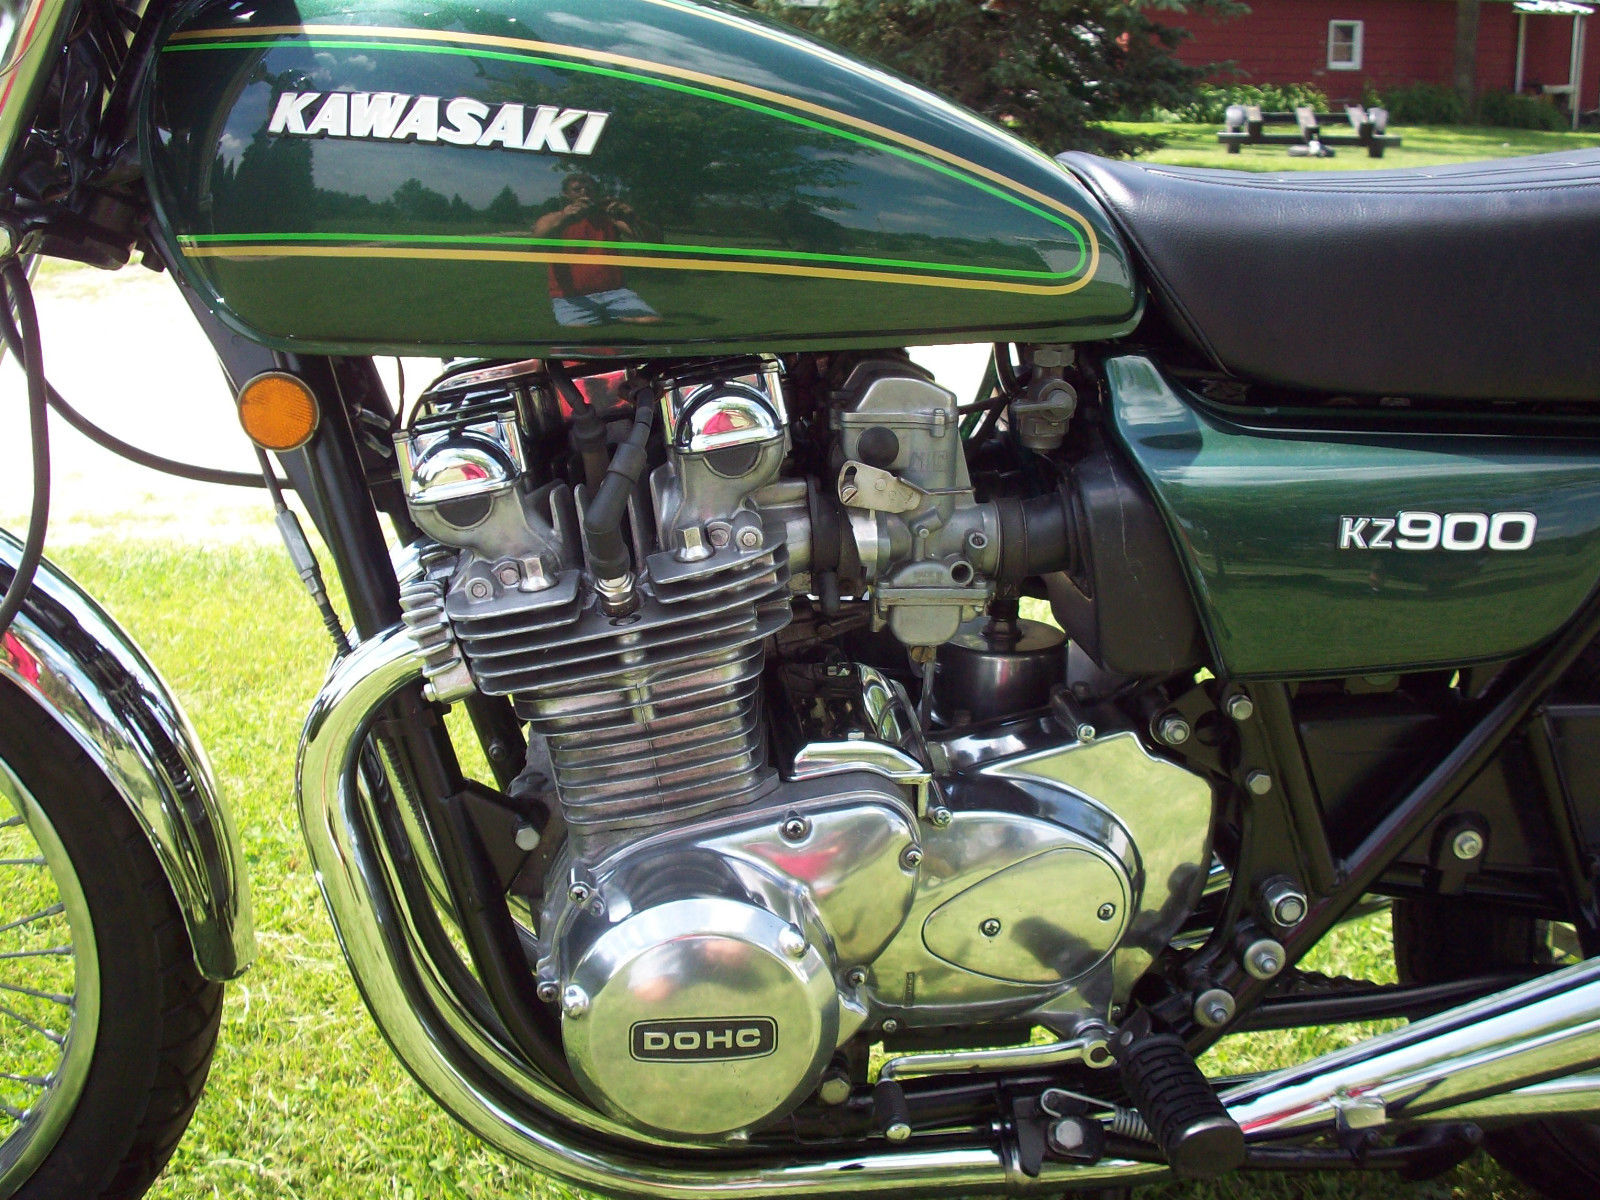 1976 Kz900 Coil Wiring Diagram Manual Of 1977 Kawasaki Kz200 1982 Kz750